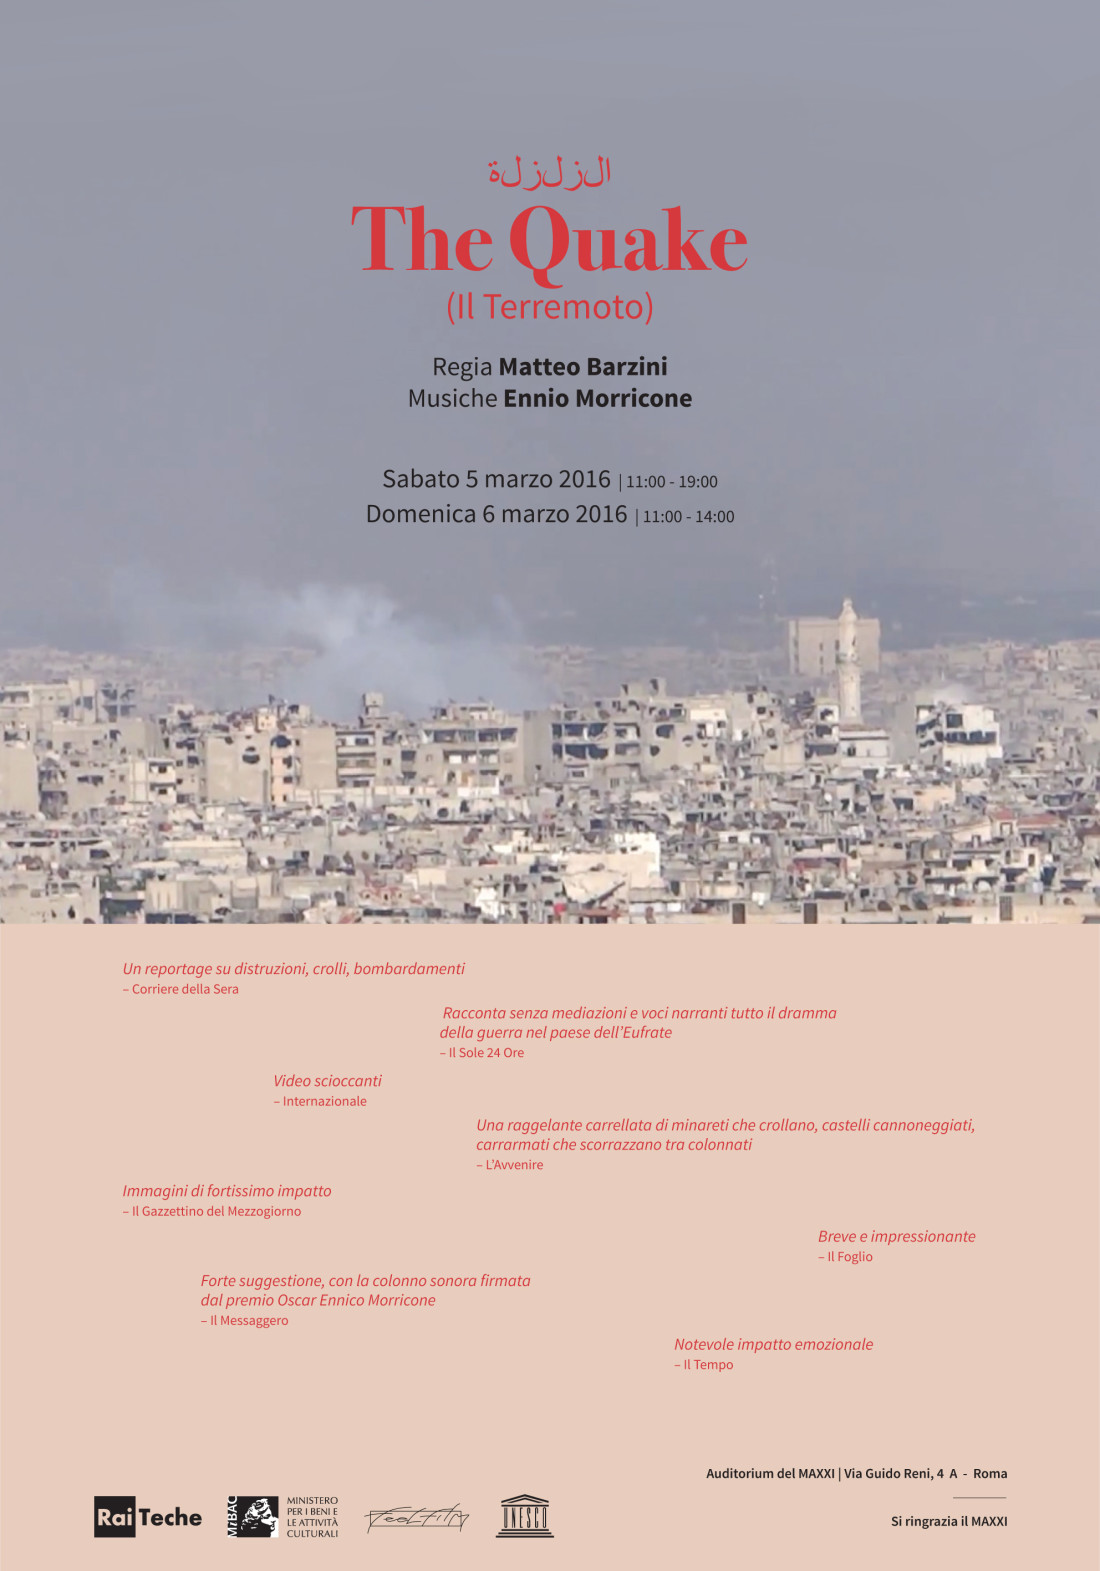 Poster The Quake by Matteo Barzini